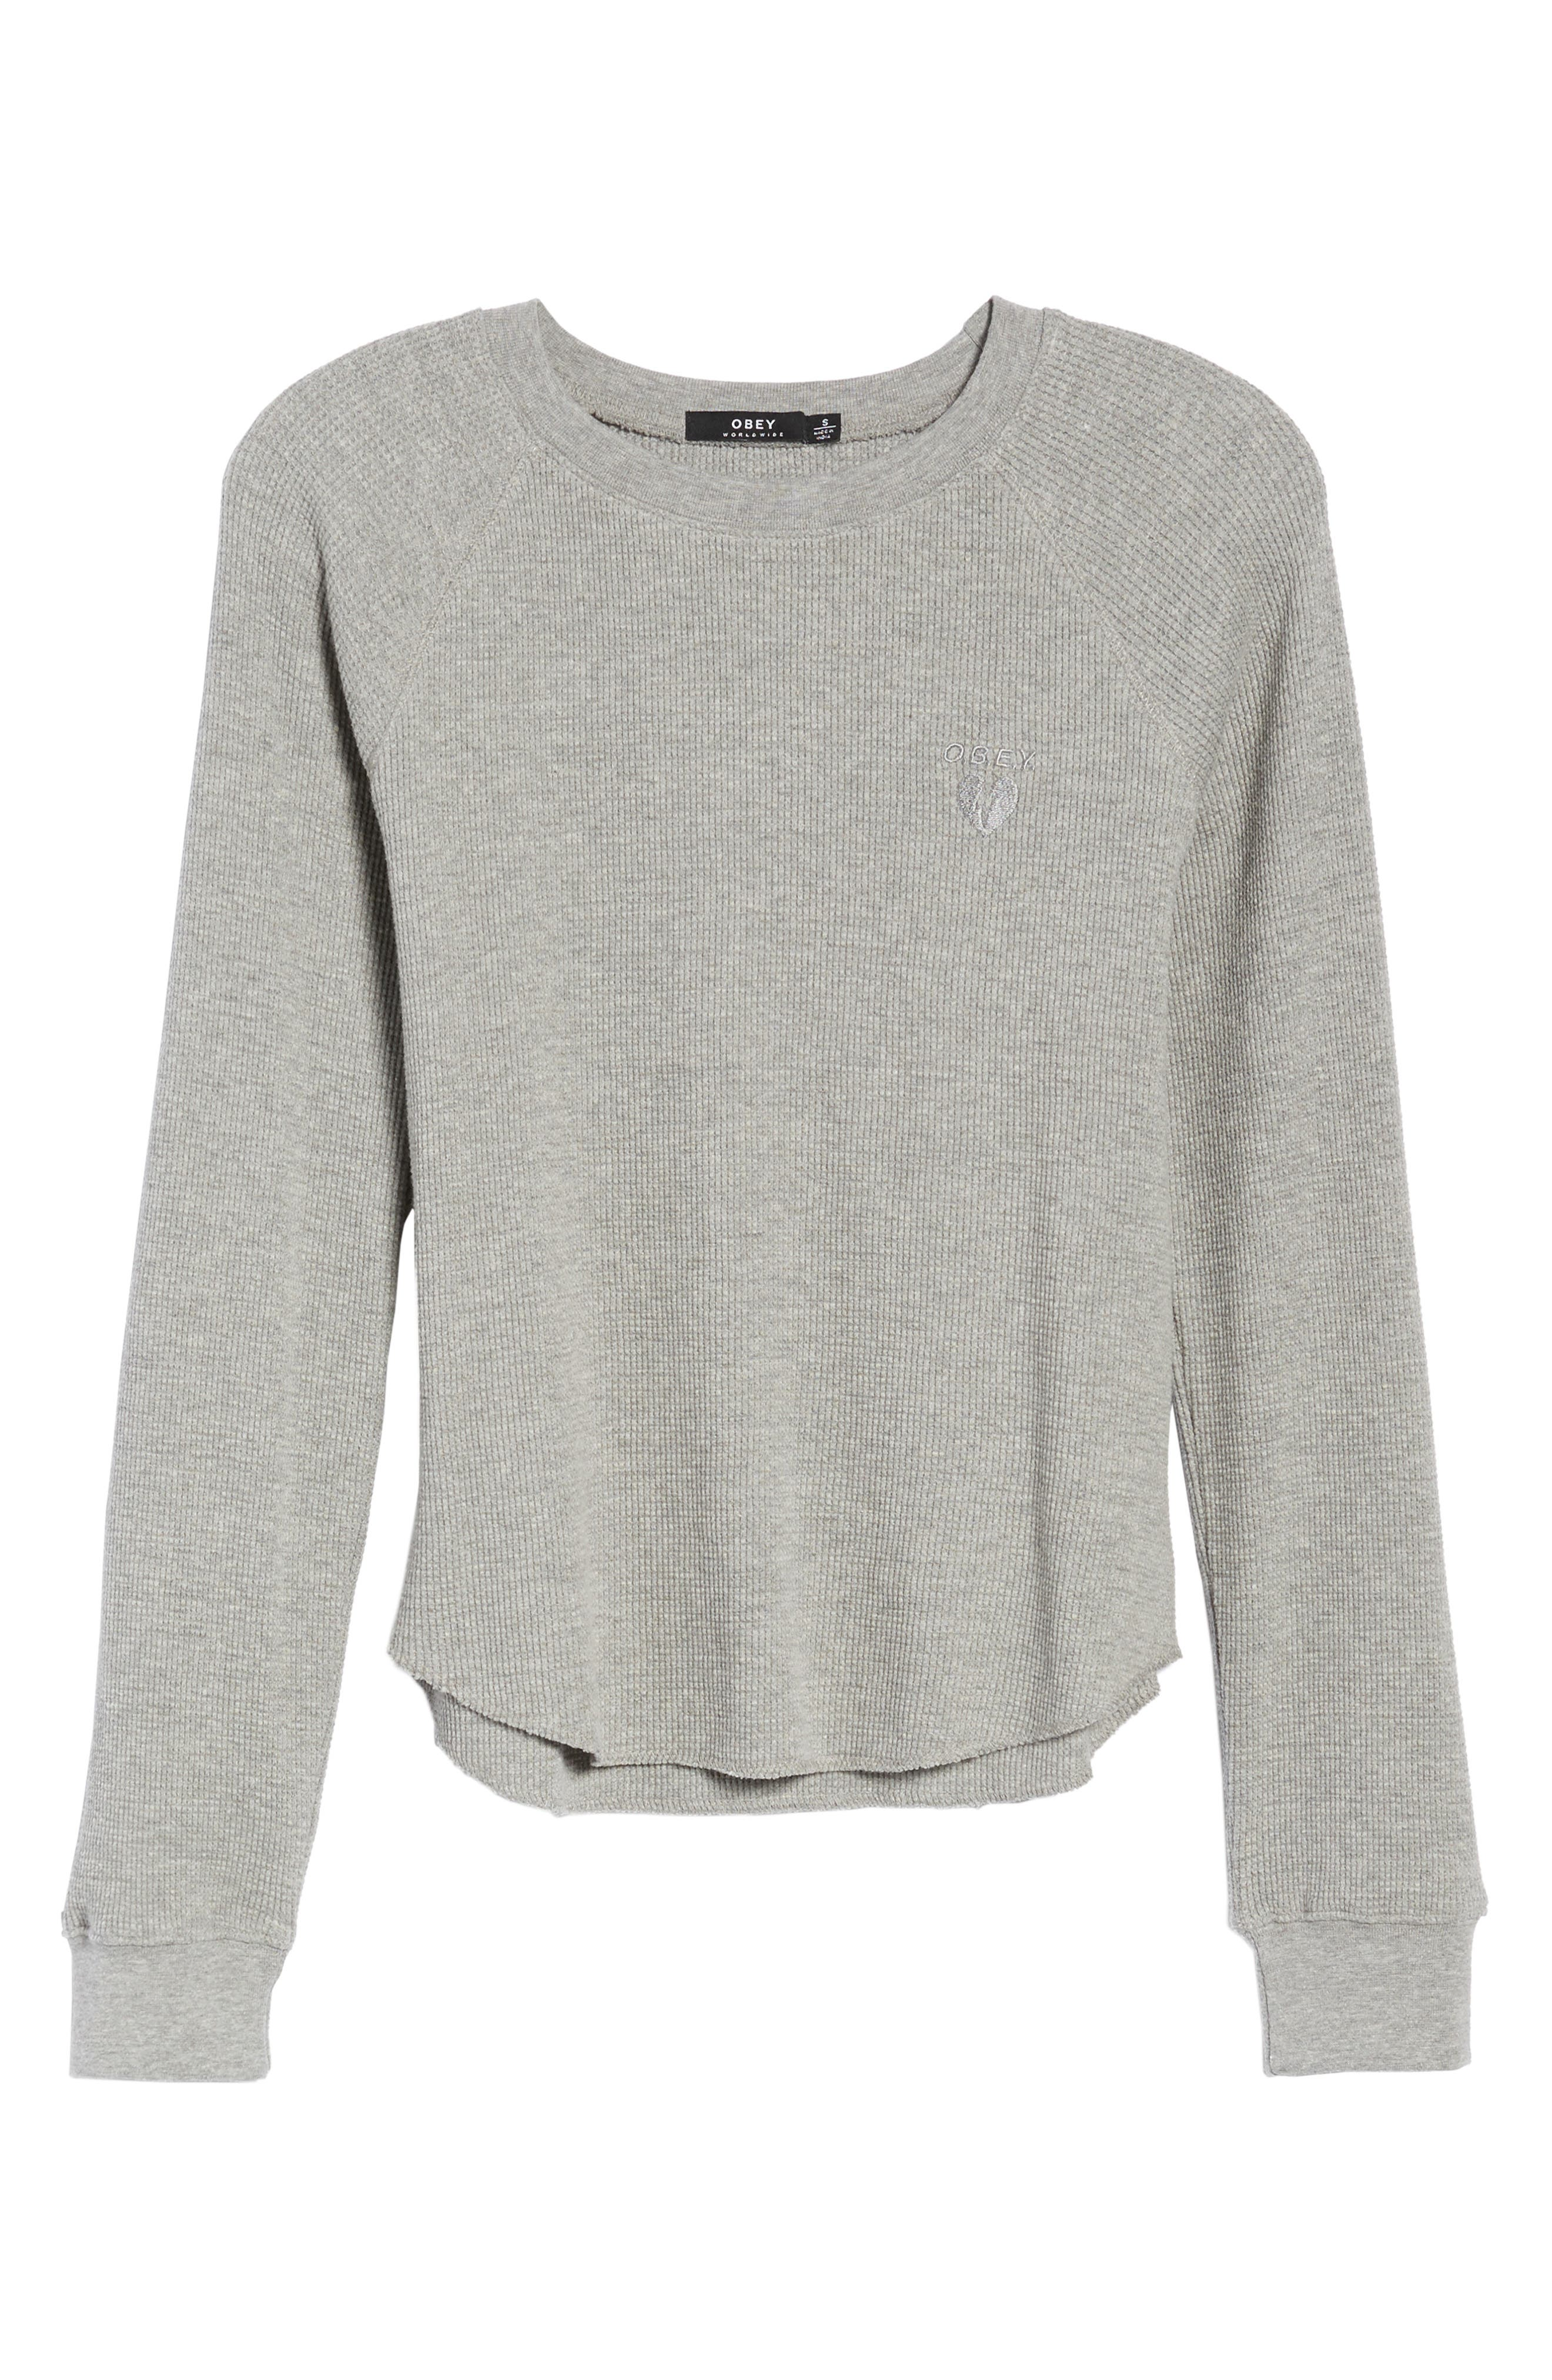 Dune Thermal Top,                             Alternate thumbnail 6, color,                             Heather Grey